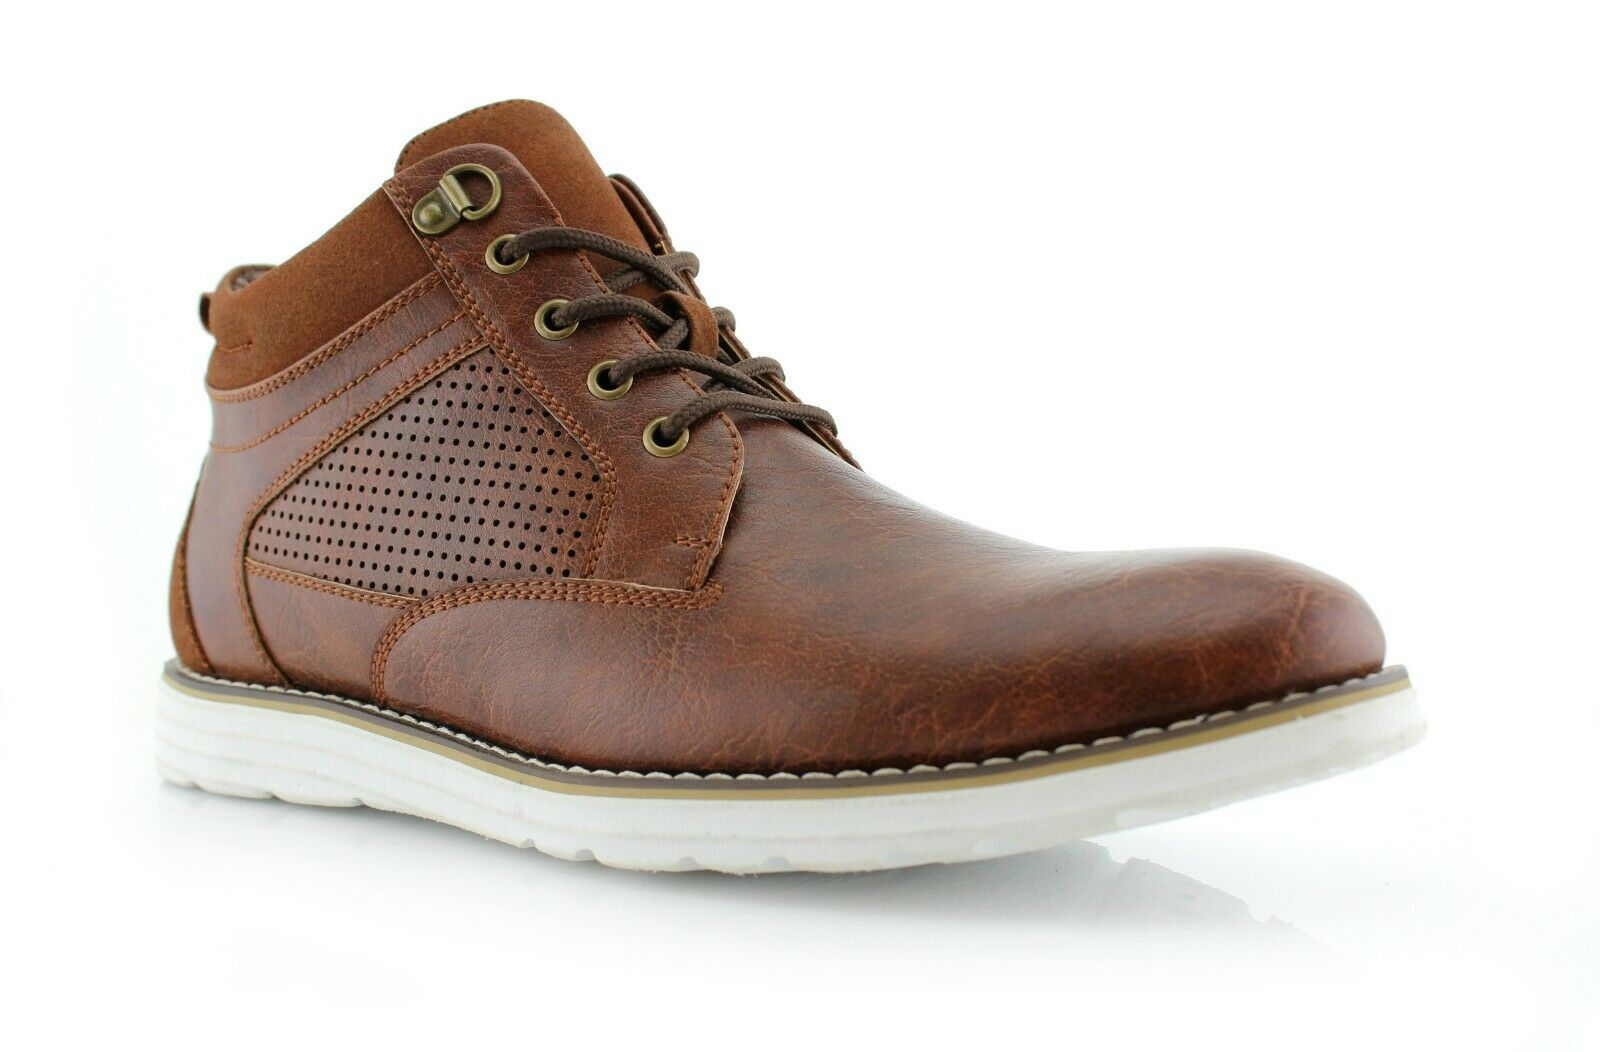 Men's Casual Mid Fashion Perforated Leather Suede Sneaker Ru